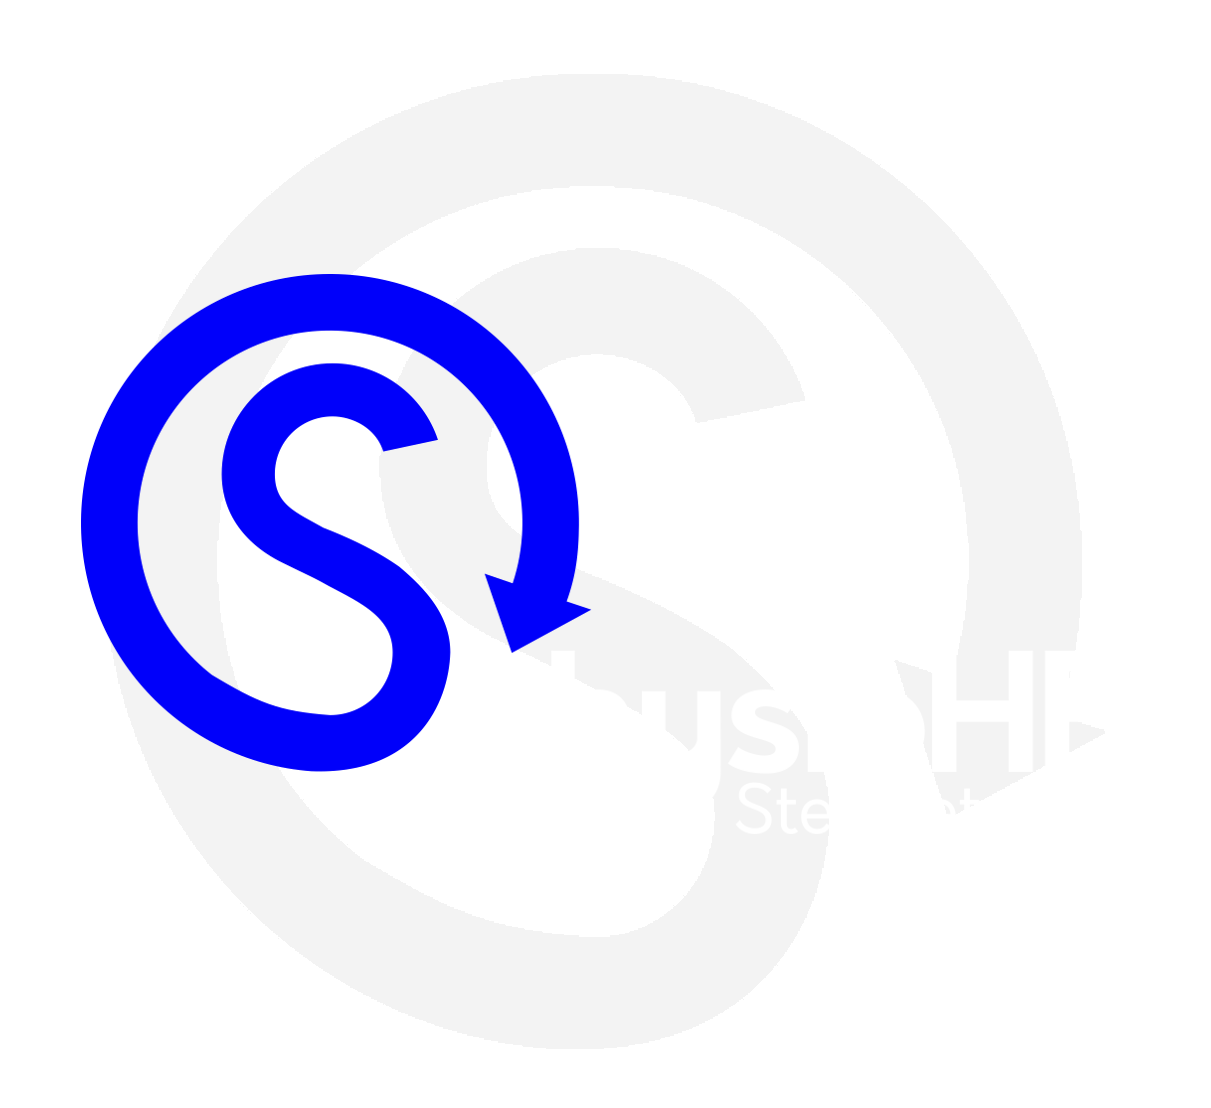 s-physio HP - Heilpraktiker für Physiotherapie